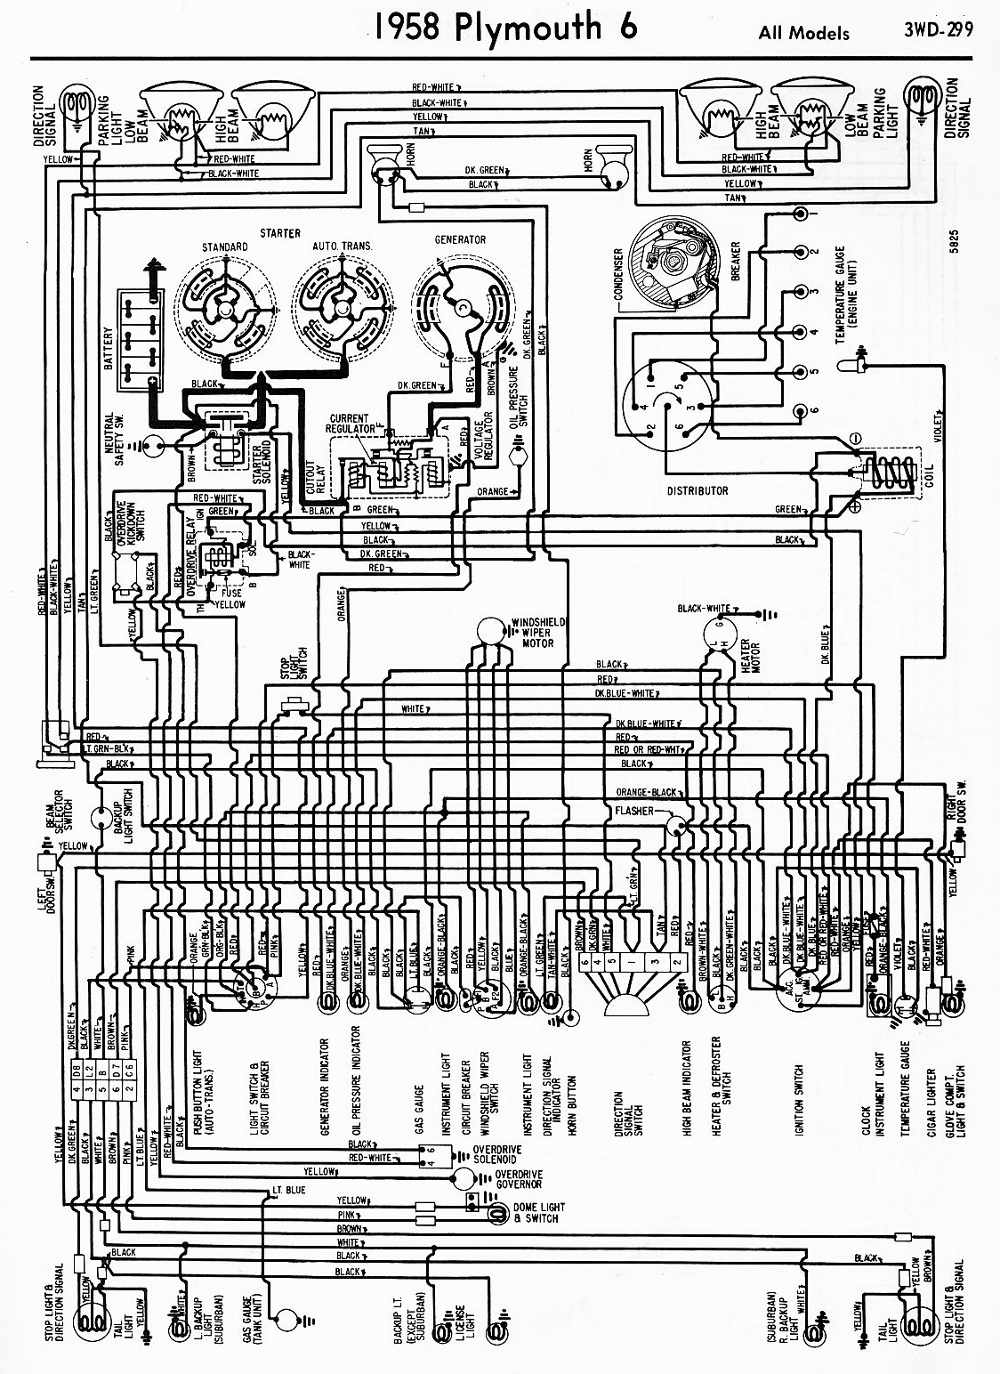 1941 plymouth wiring diagrams bull wiring diagram for free plymouth wiring diagrams for 1997 se vog 1941 plymouth wiring diagrams